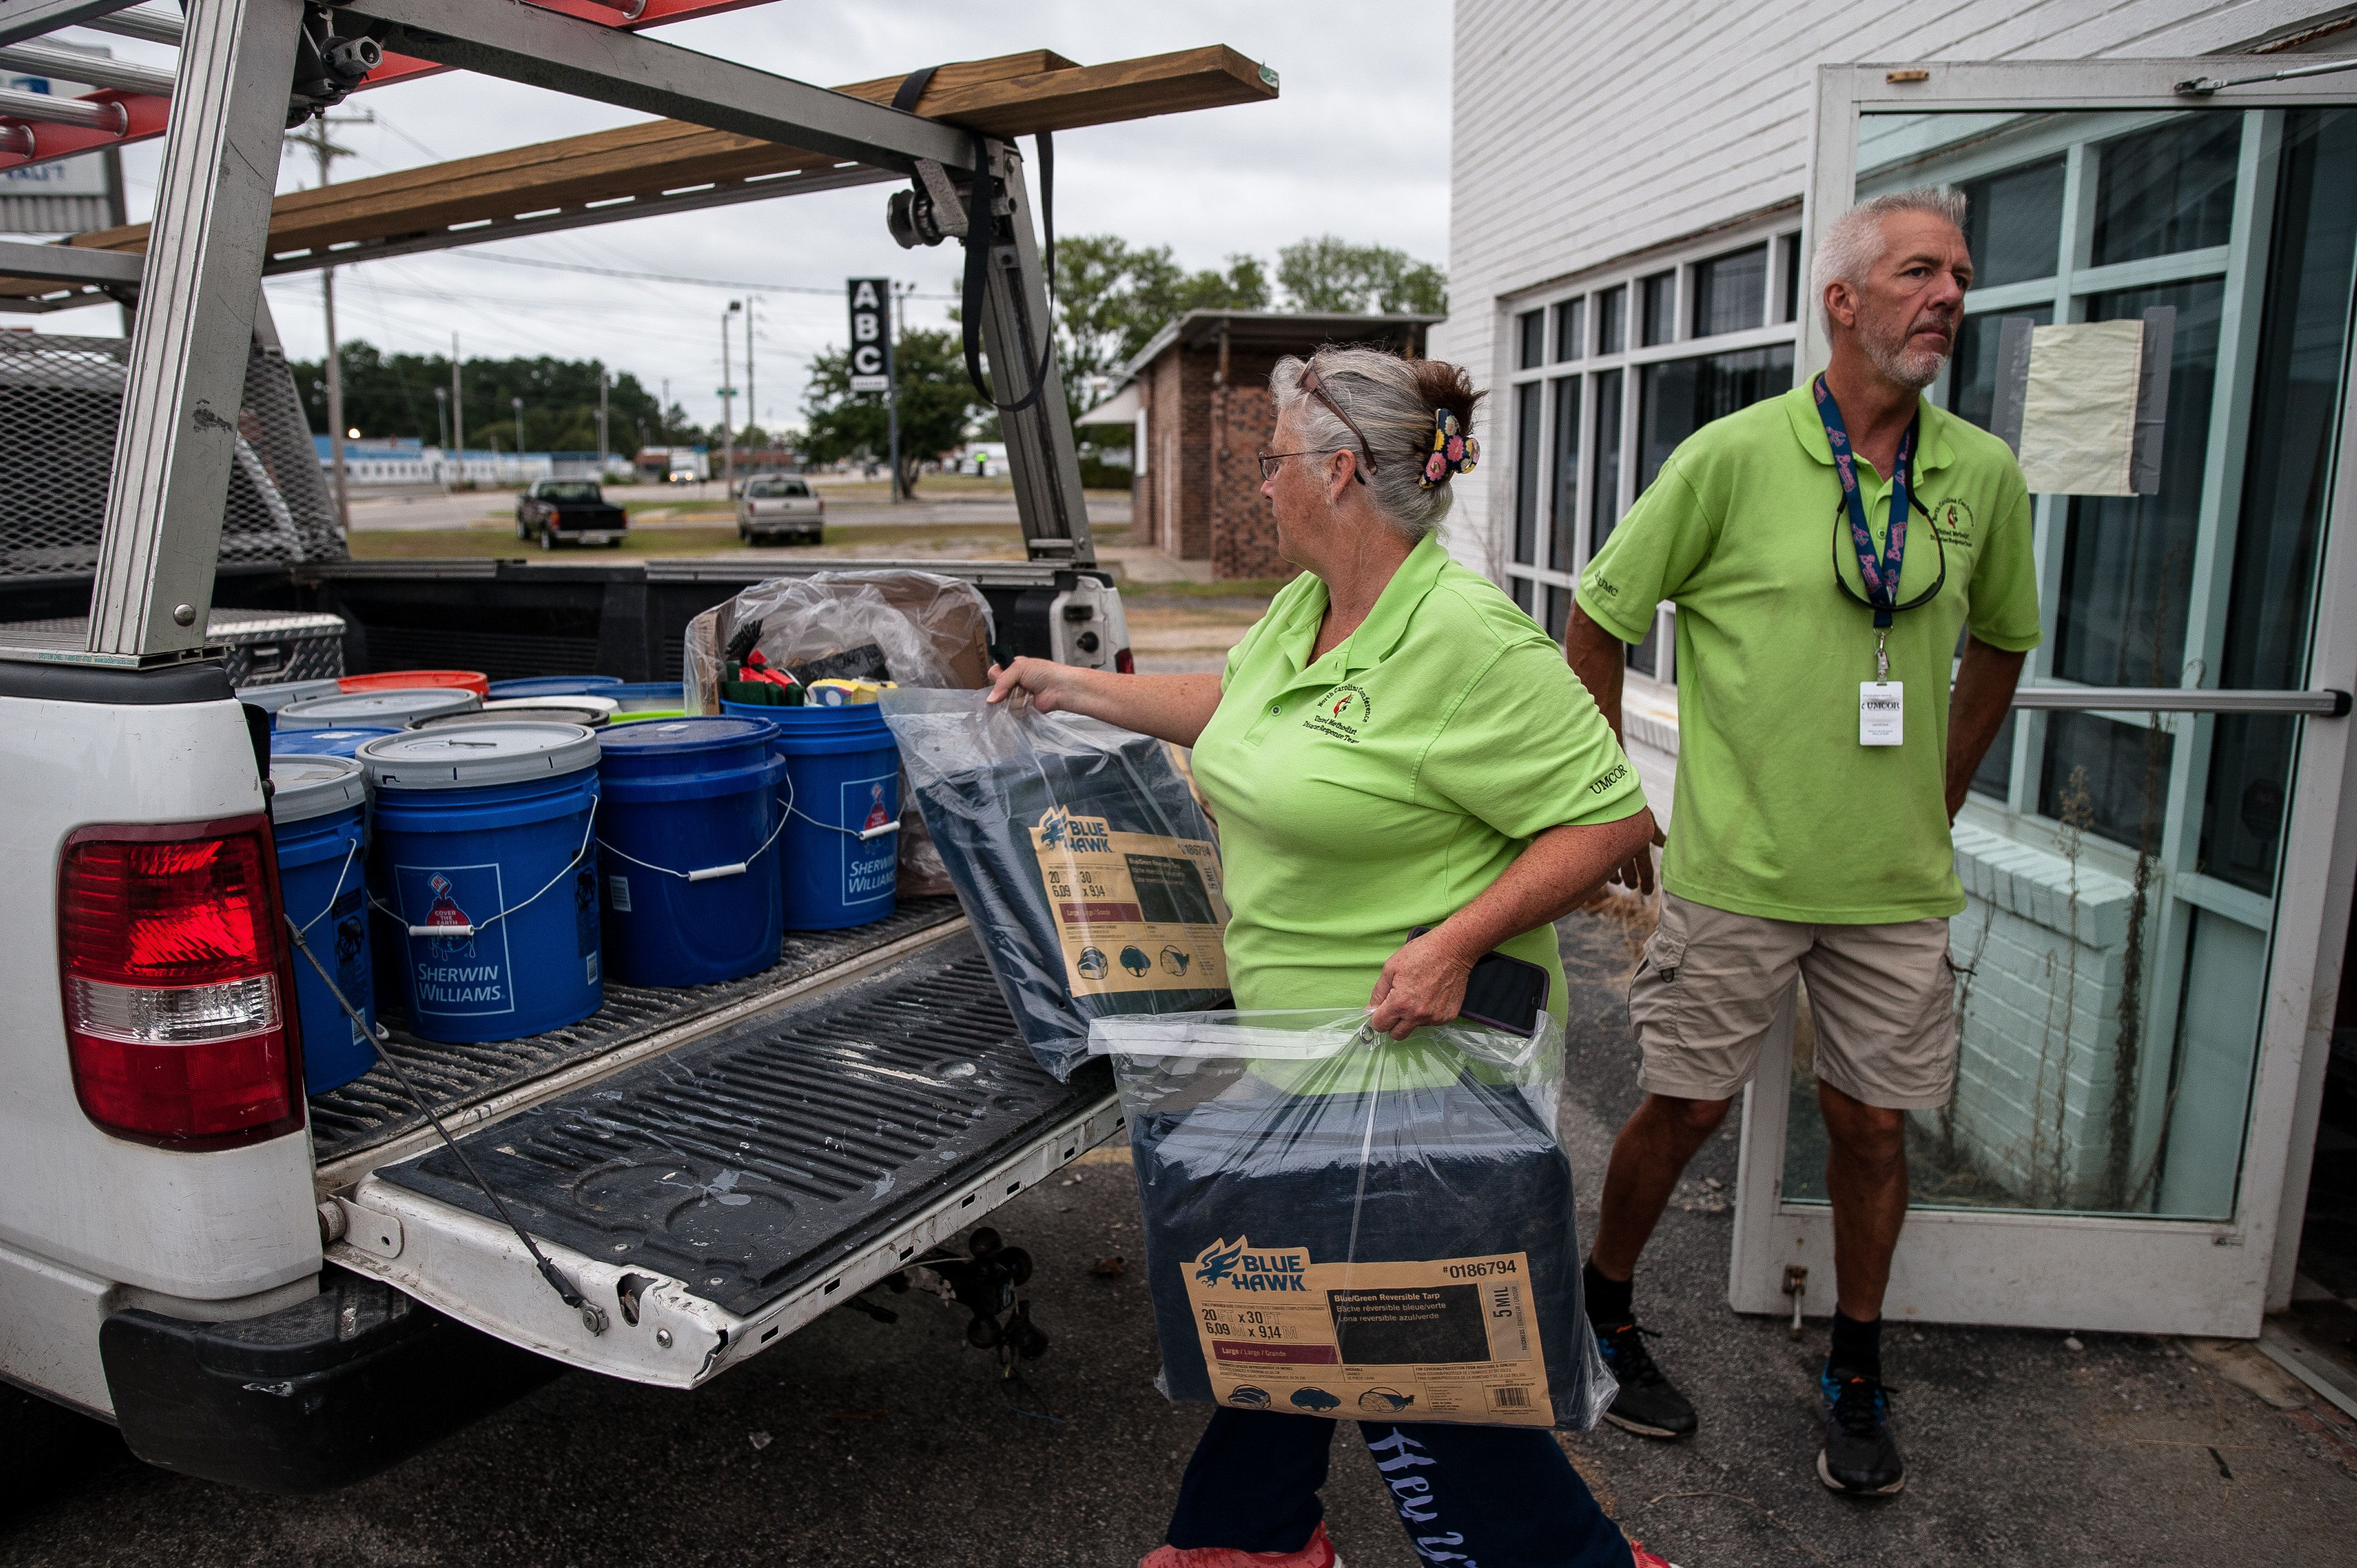 Anne and Jeff Wade loaded theirpickup with supplies early Thursday in Lumberton.